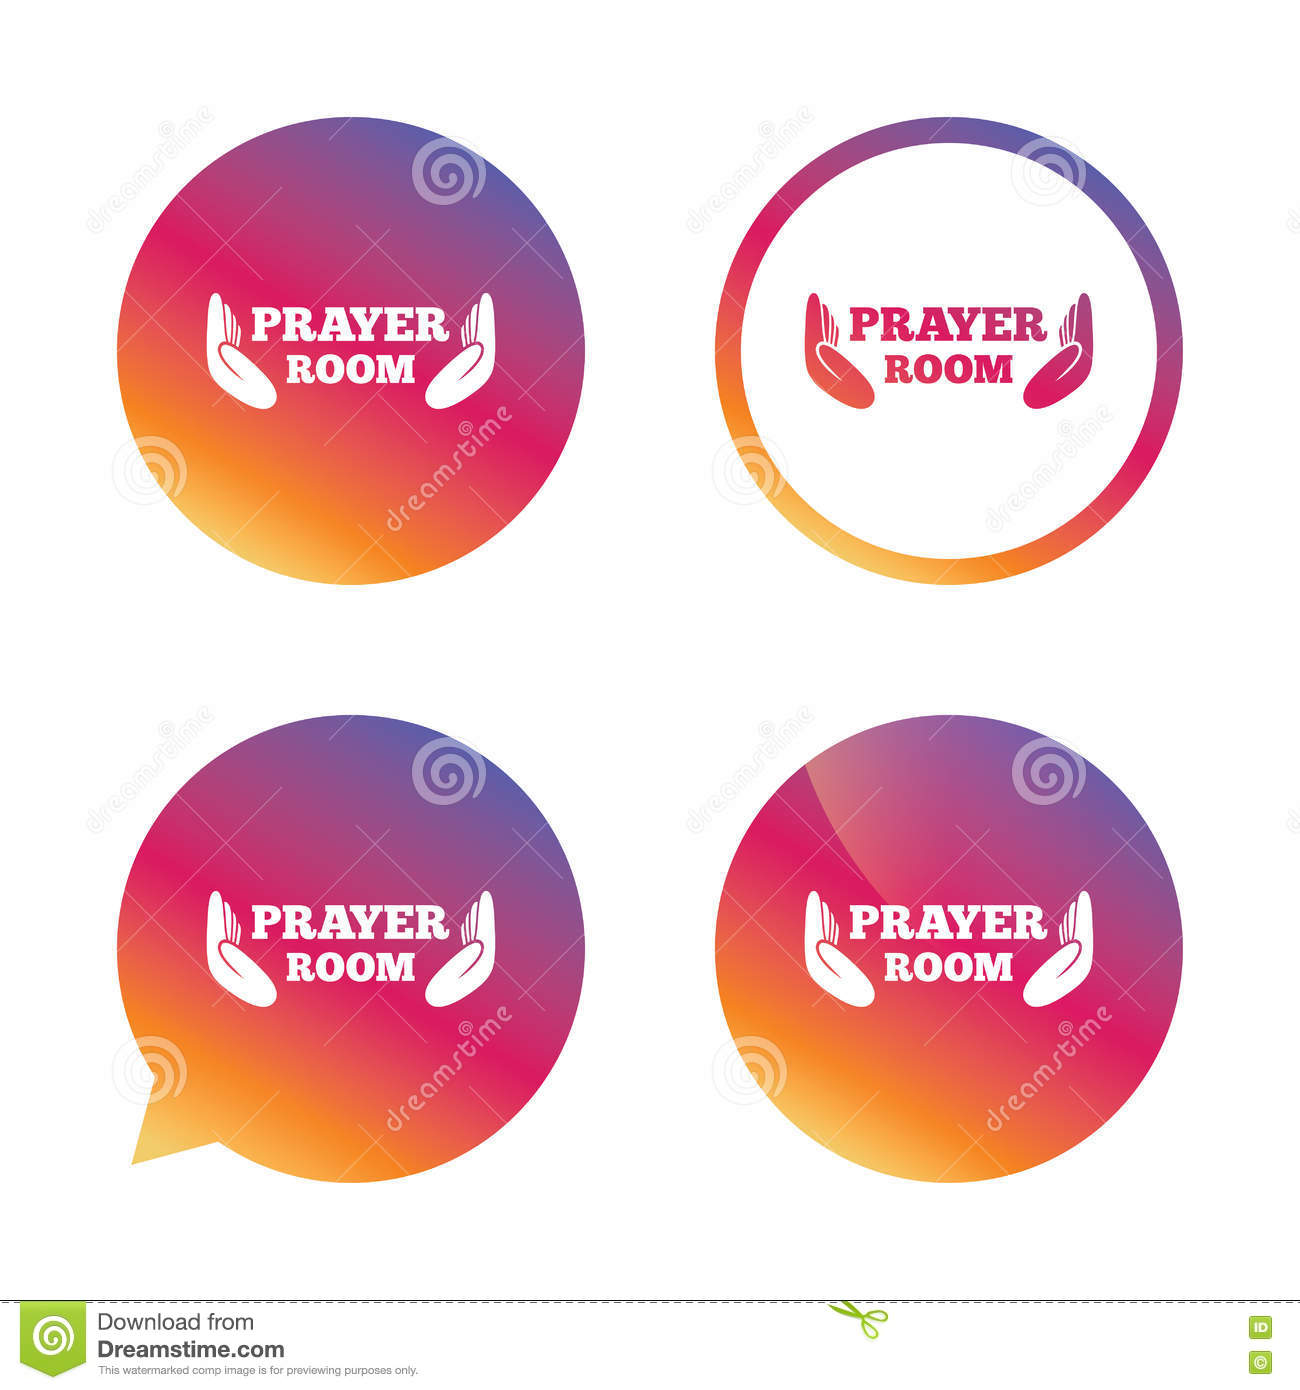 pray chat sites The leader in free online fundraising with over $1 billion raised on our compassionate crowdfunding website fundraise for good today - it's free & easy.